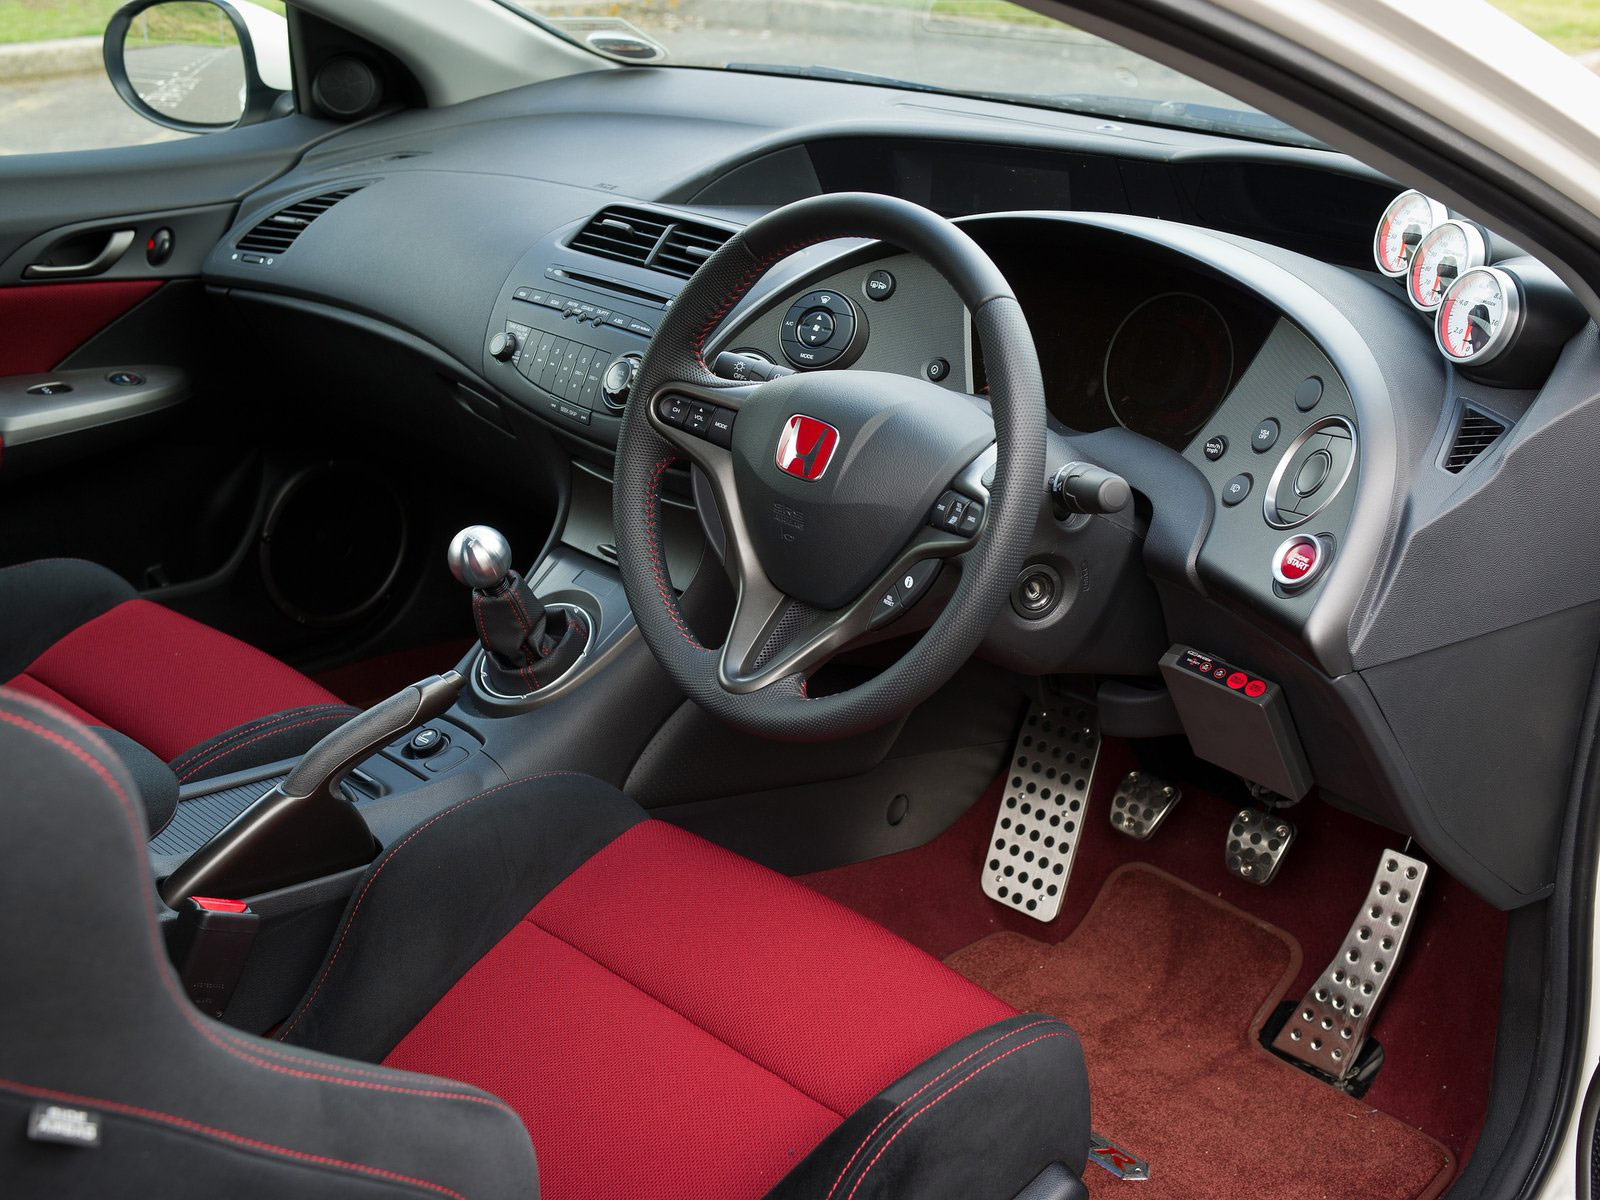 2010 Honda Civic Type R The honda civic type r mugen